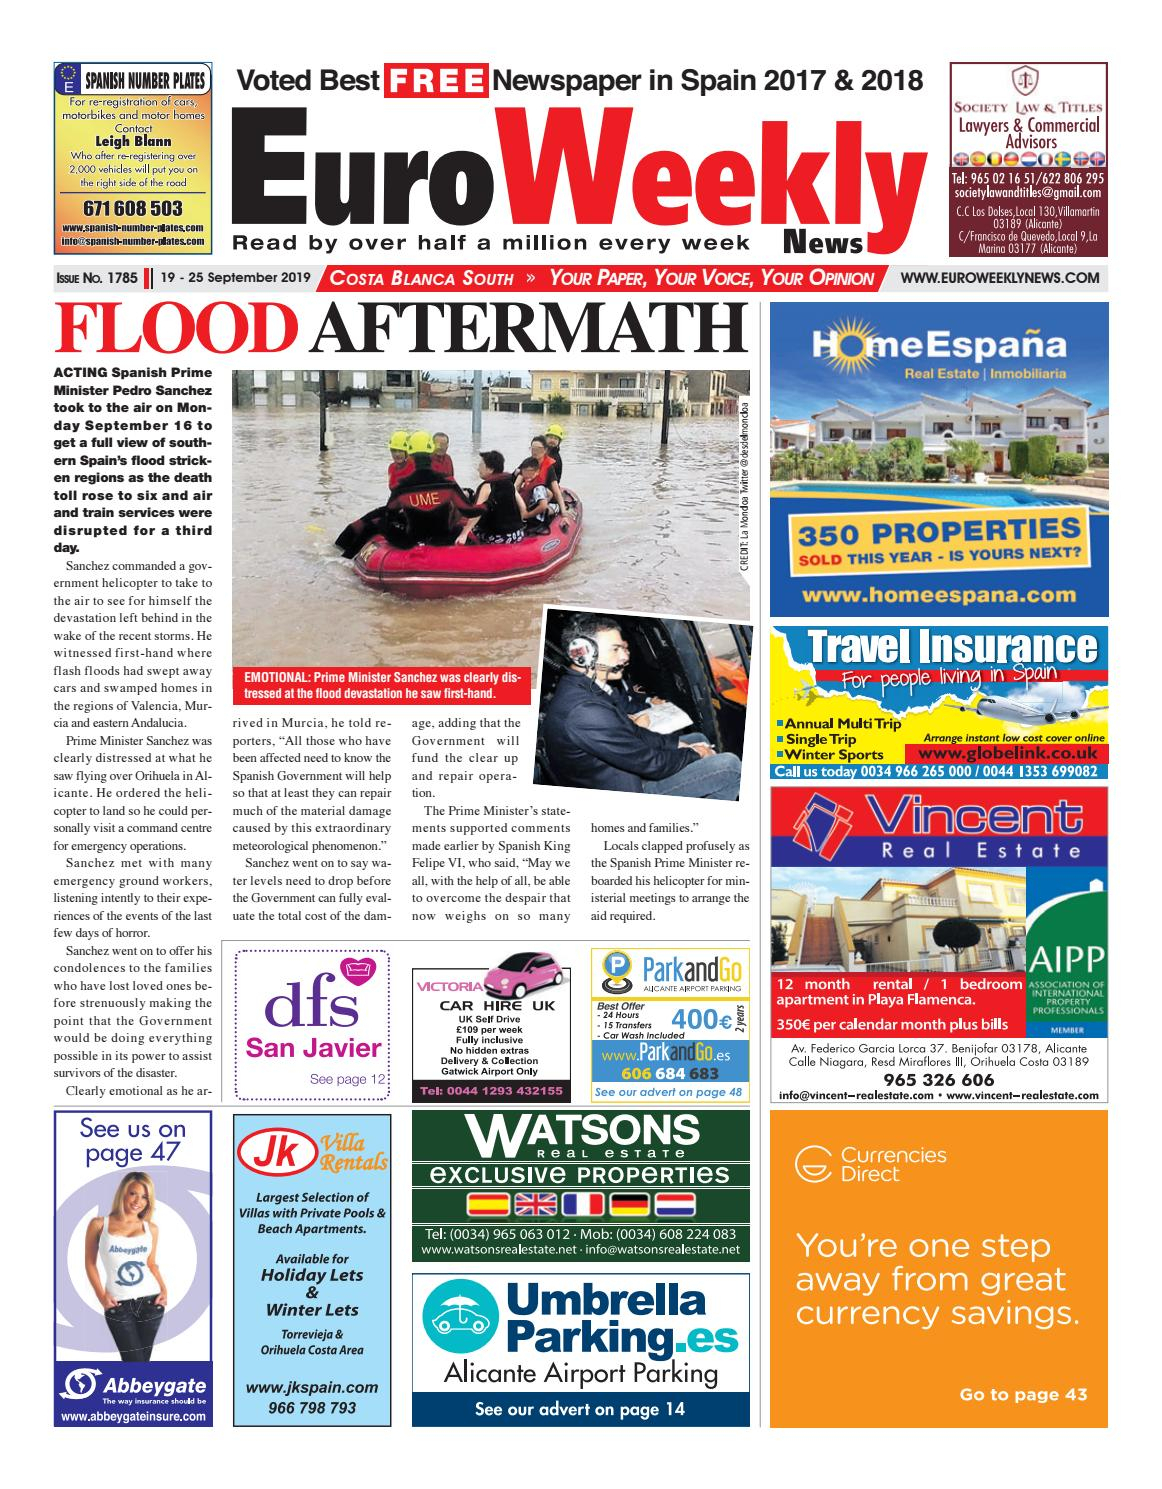 Euro Weekly News - Costa Blanca South 19 - 25 September 2019